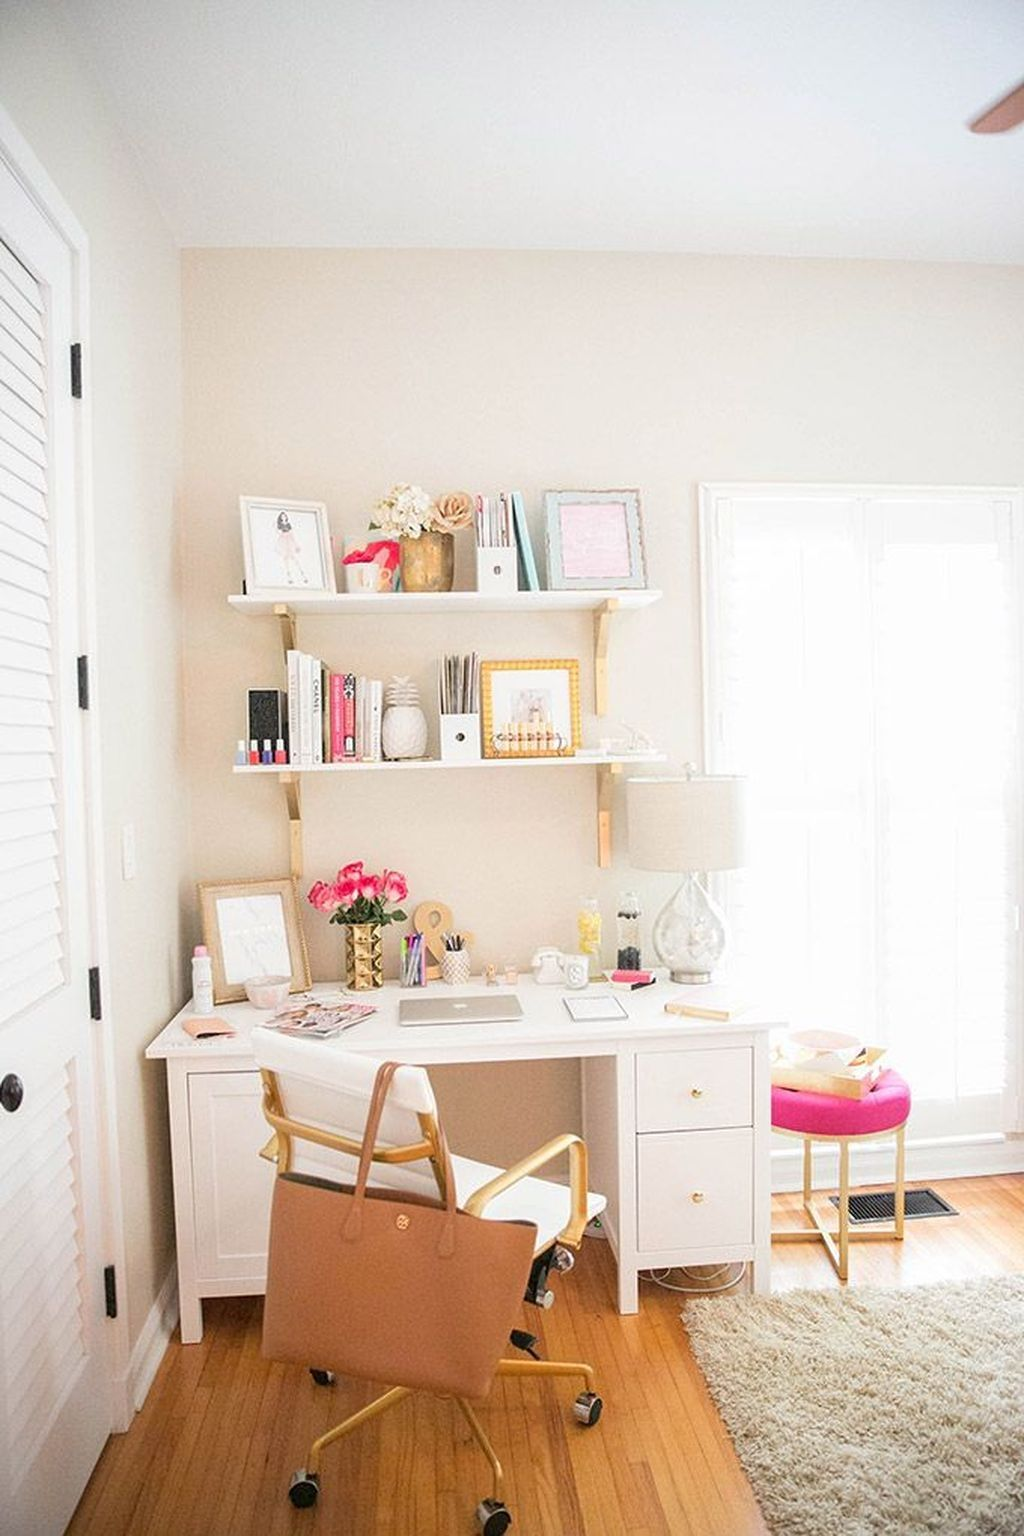 88 Cool Small Home Office Design Ideas | Office designs, Zen space ...